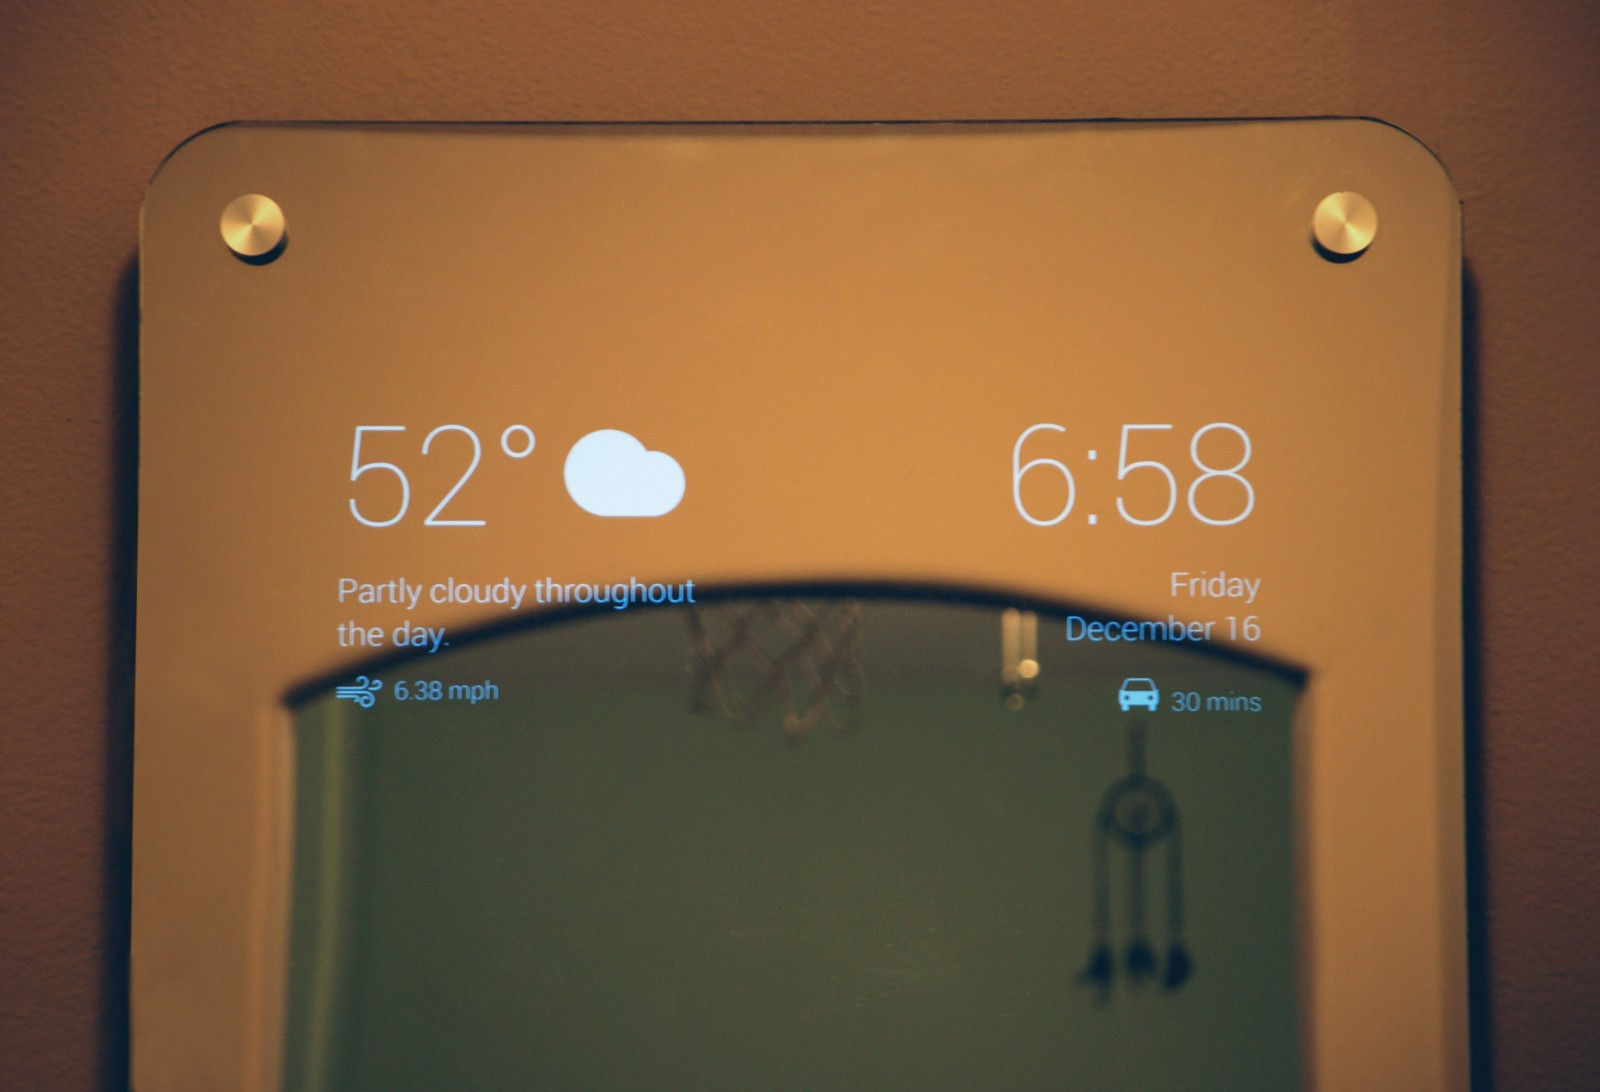 I Made Myself a Smart Mirror - By